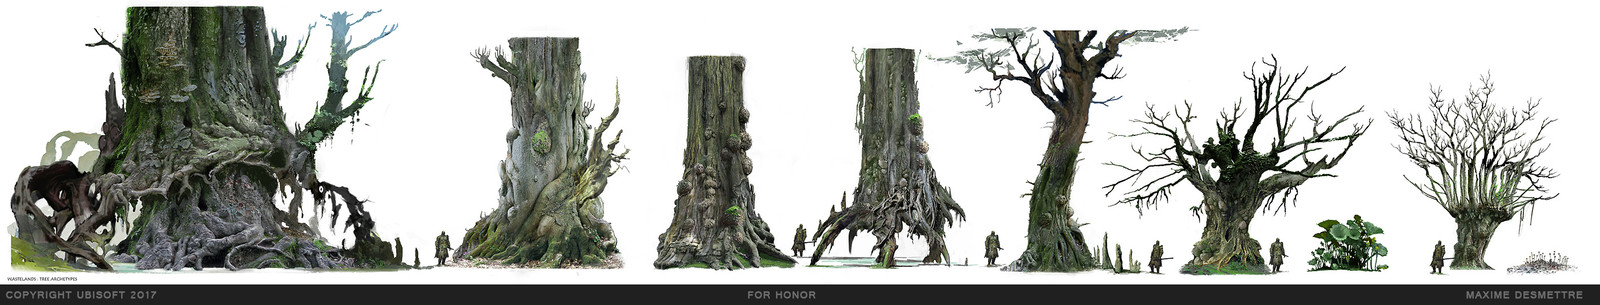 ForHonor : Tree Designs